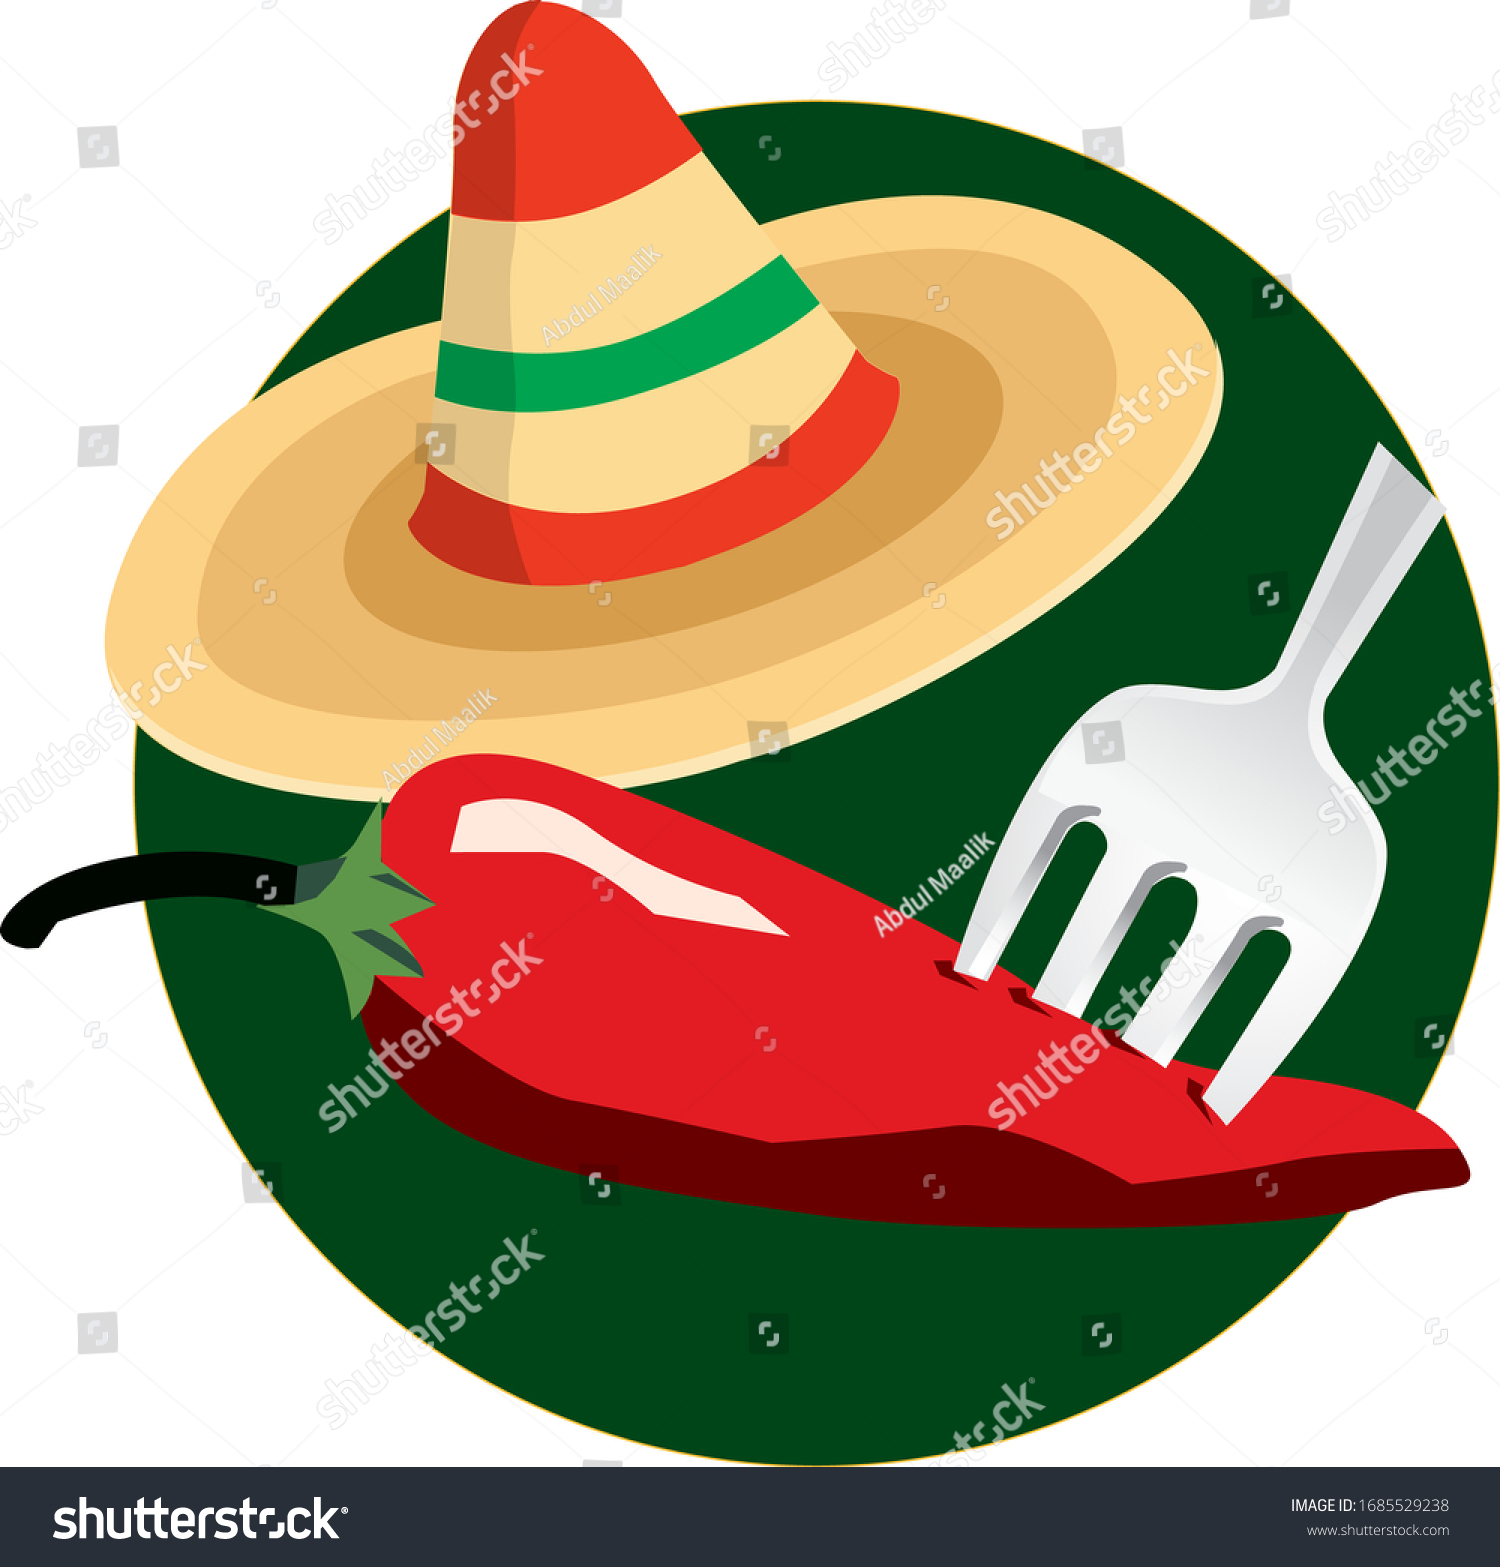 Mexican Food Recipe Taco Chili Hat Stock Vector Royalty Free 1685529238